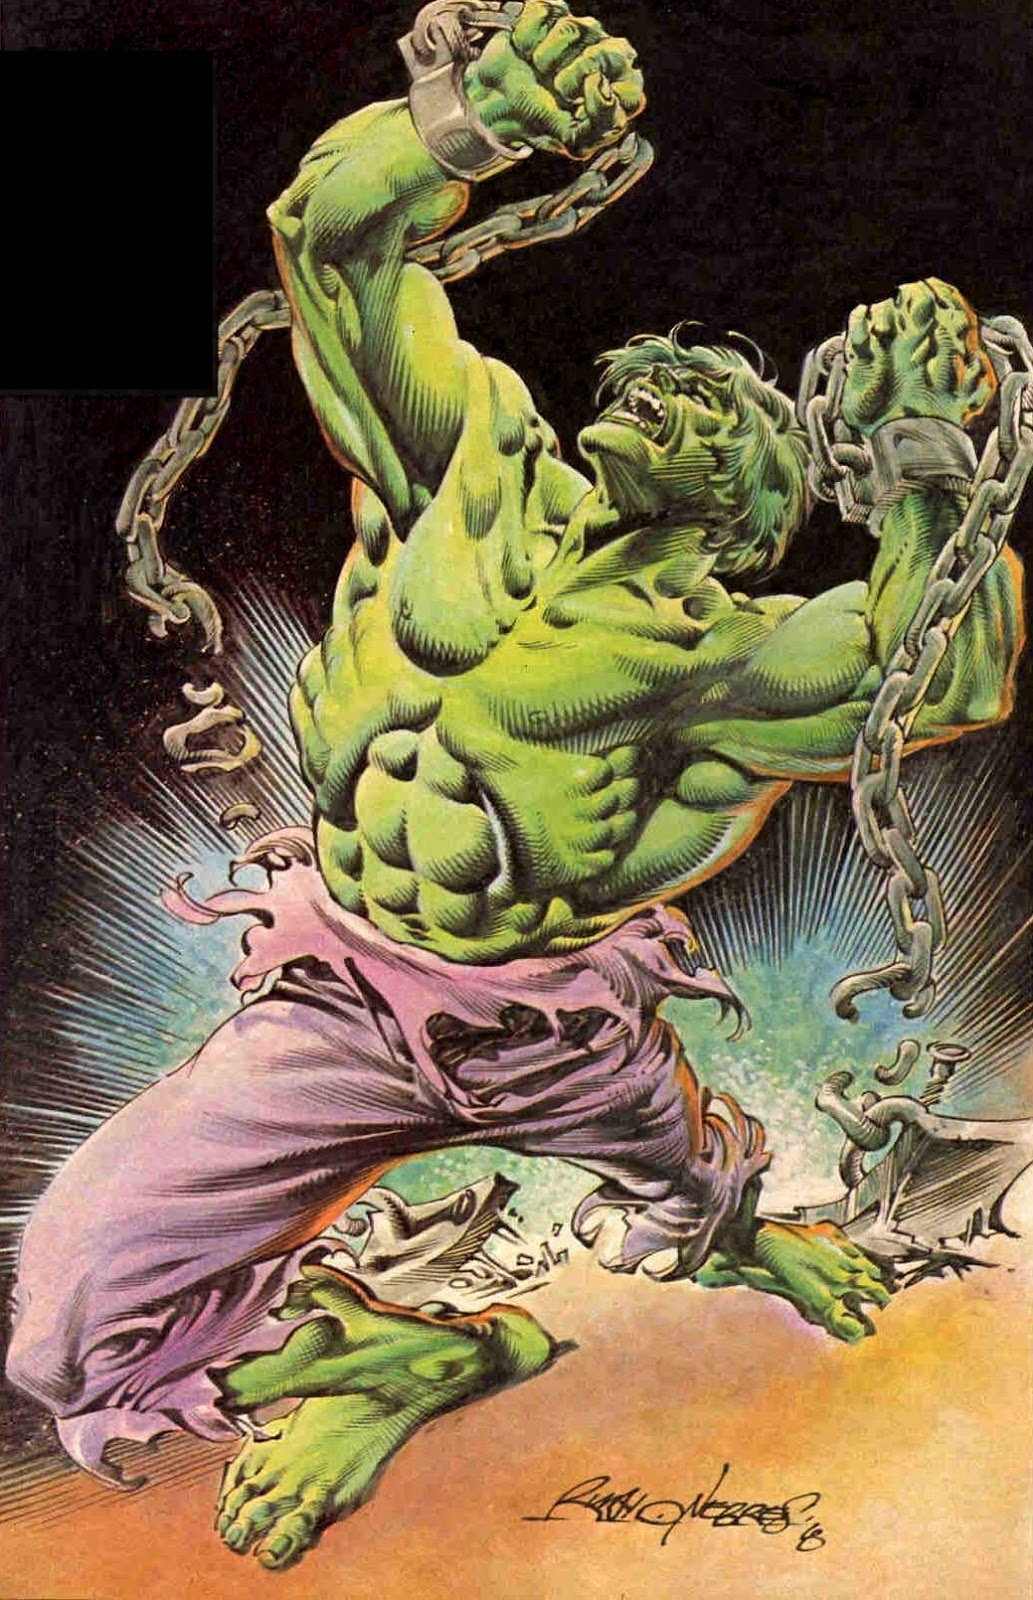 Marvel Comics Of The 1980s 1979 The Incredible Hulk By